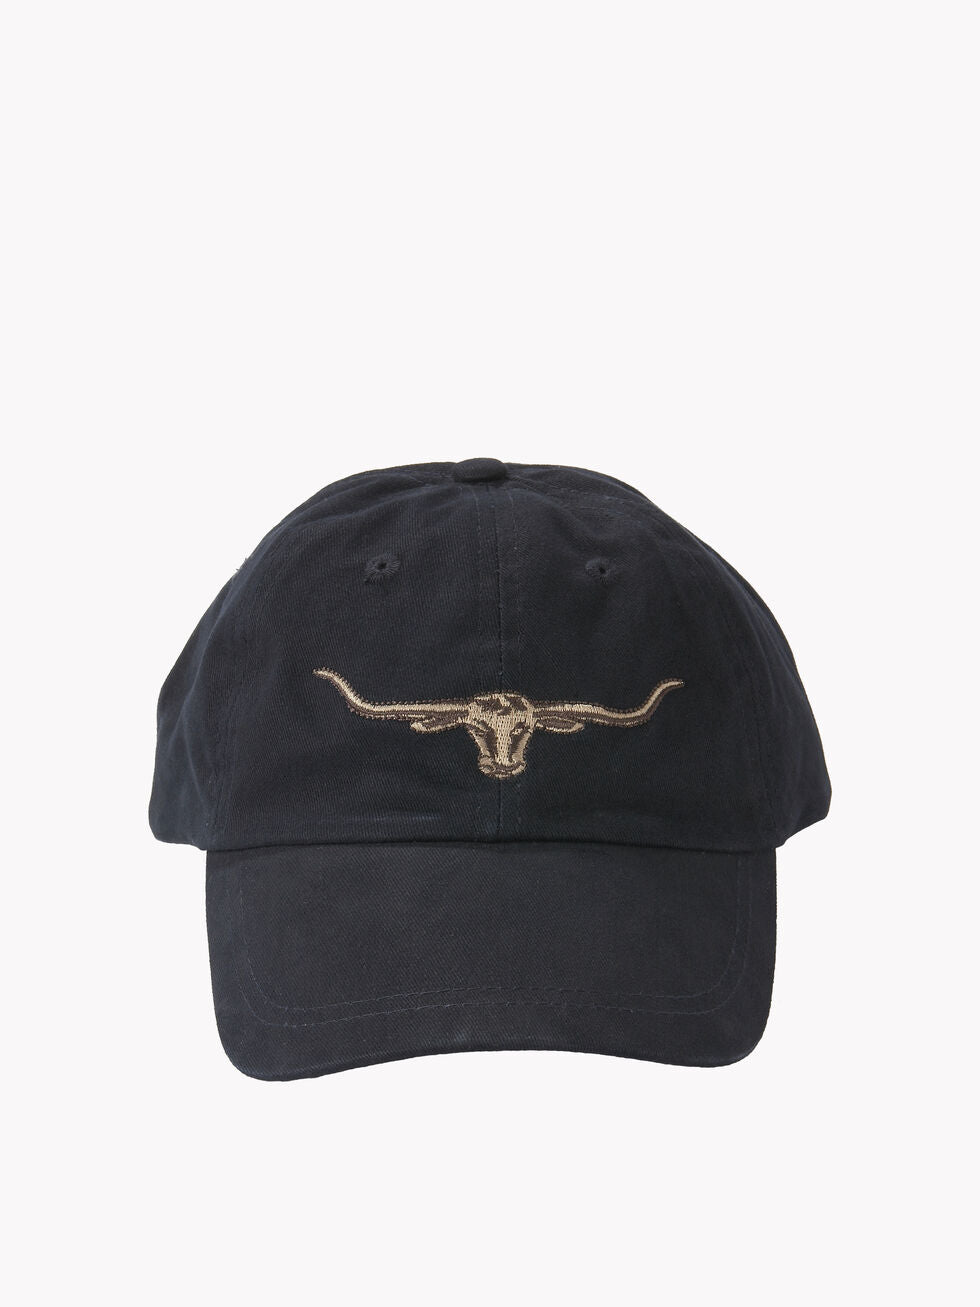 RM Williams Steer Head Logo Cap An R.M. Williams classic available at My Harley and Rose